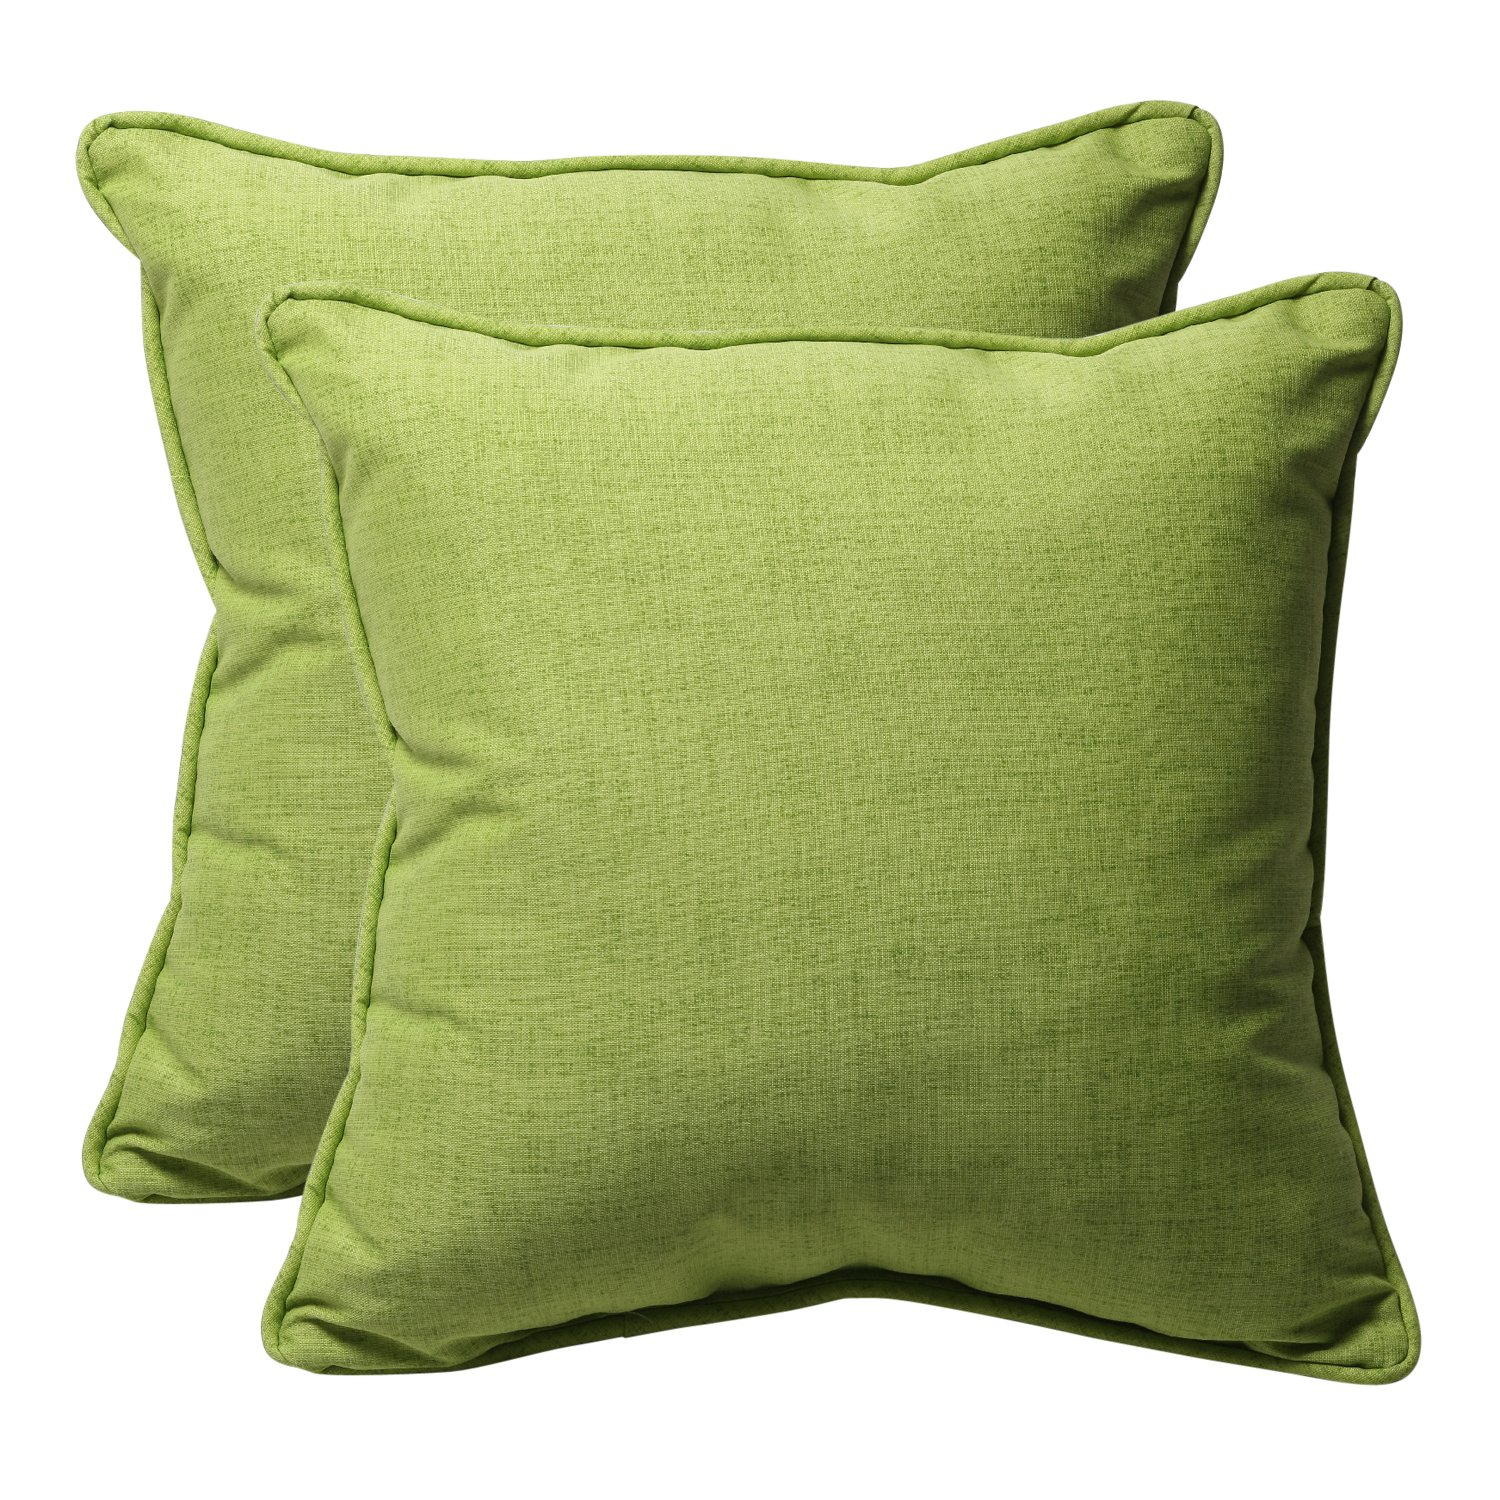 amazoncom pillow perfect decorative green textured solid square  - amazoncom pillow perfect decorative green textured solid square tosspillows pack home  kitchen